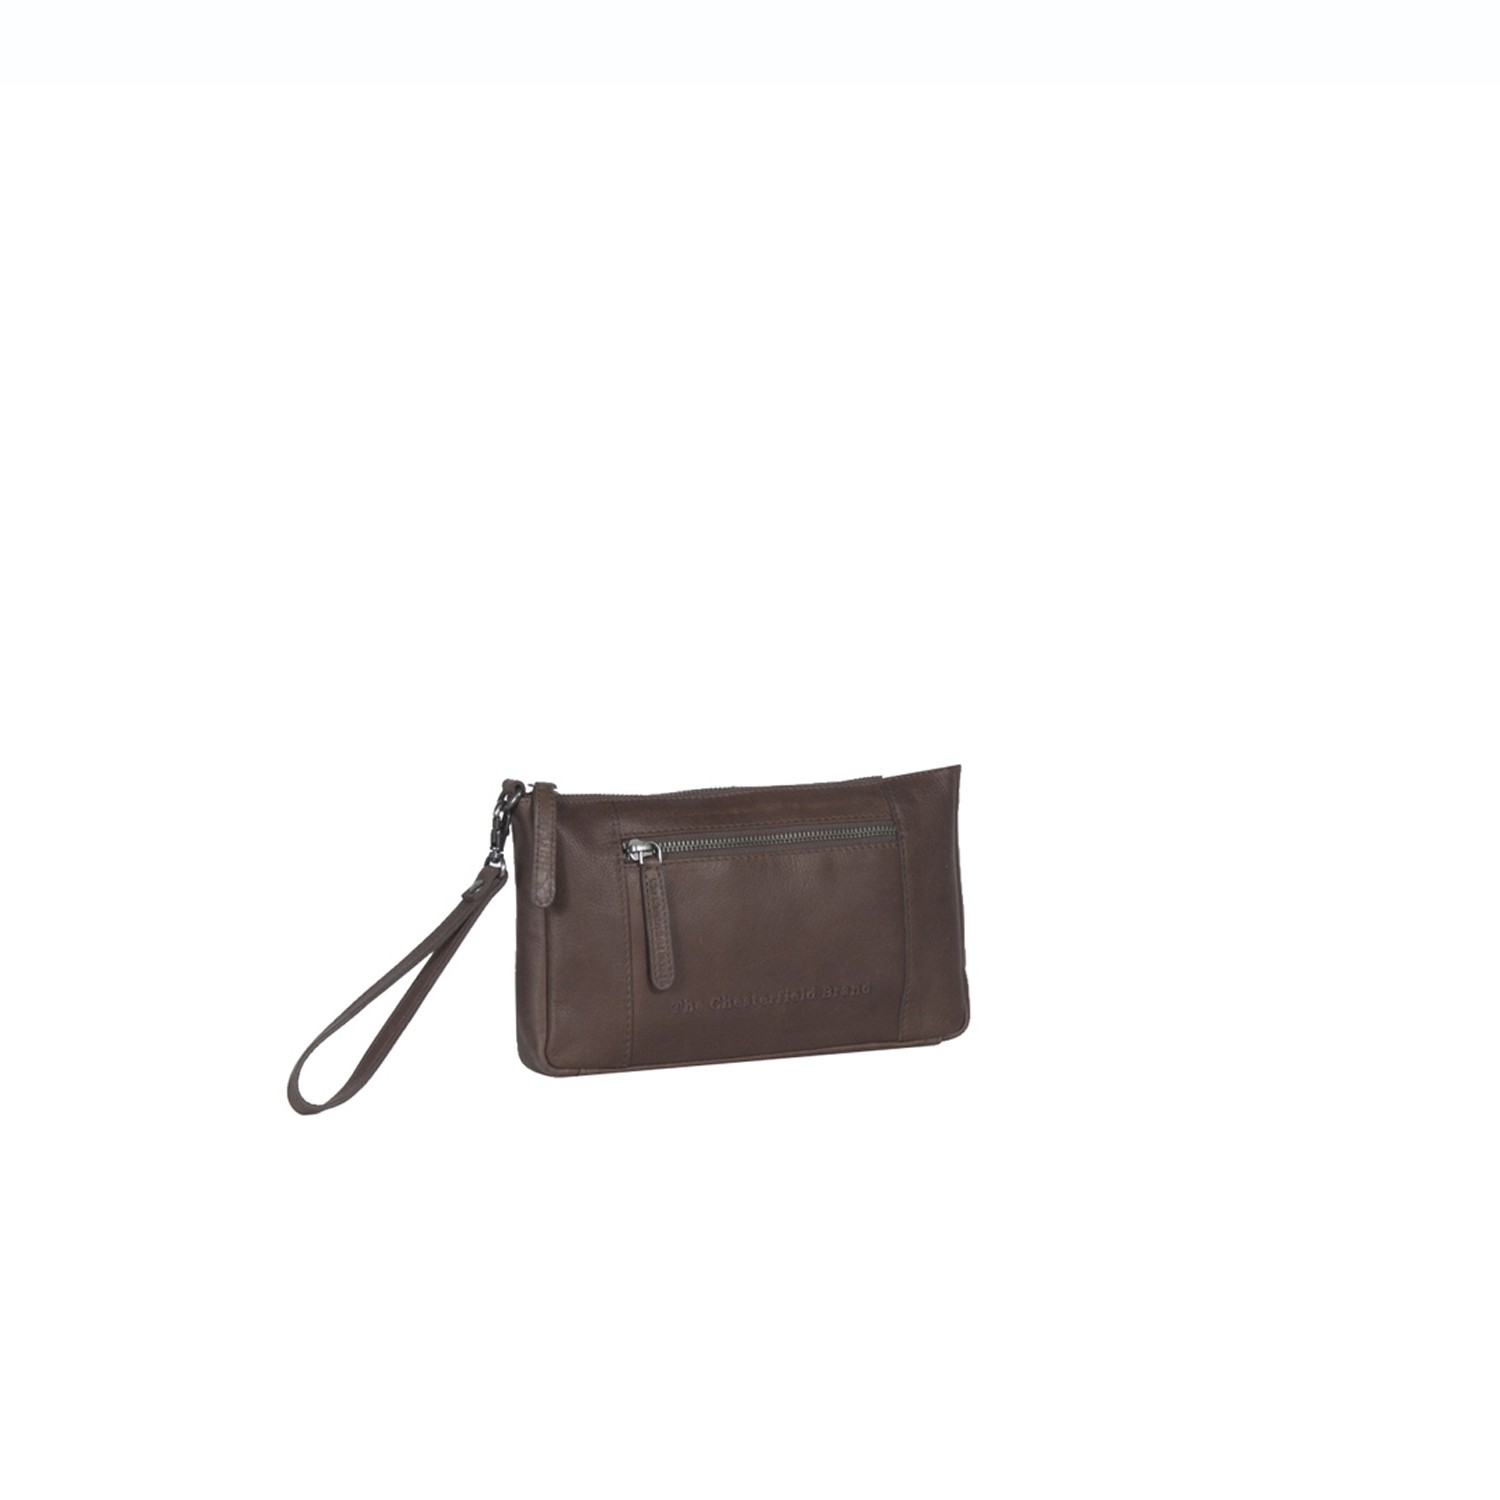 Bilde av Chesterfield Leather Clutch Brown Sonia